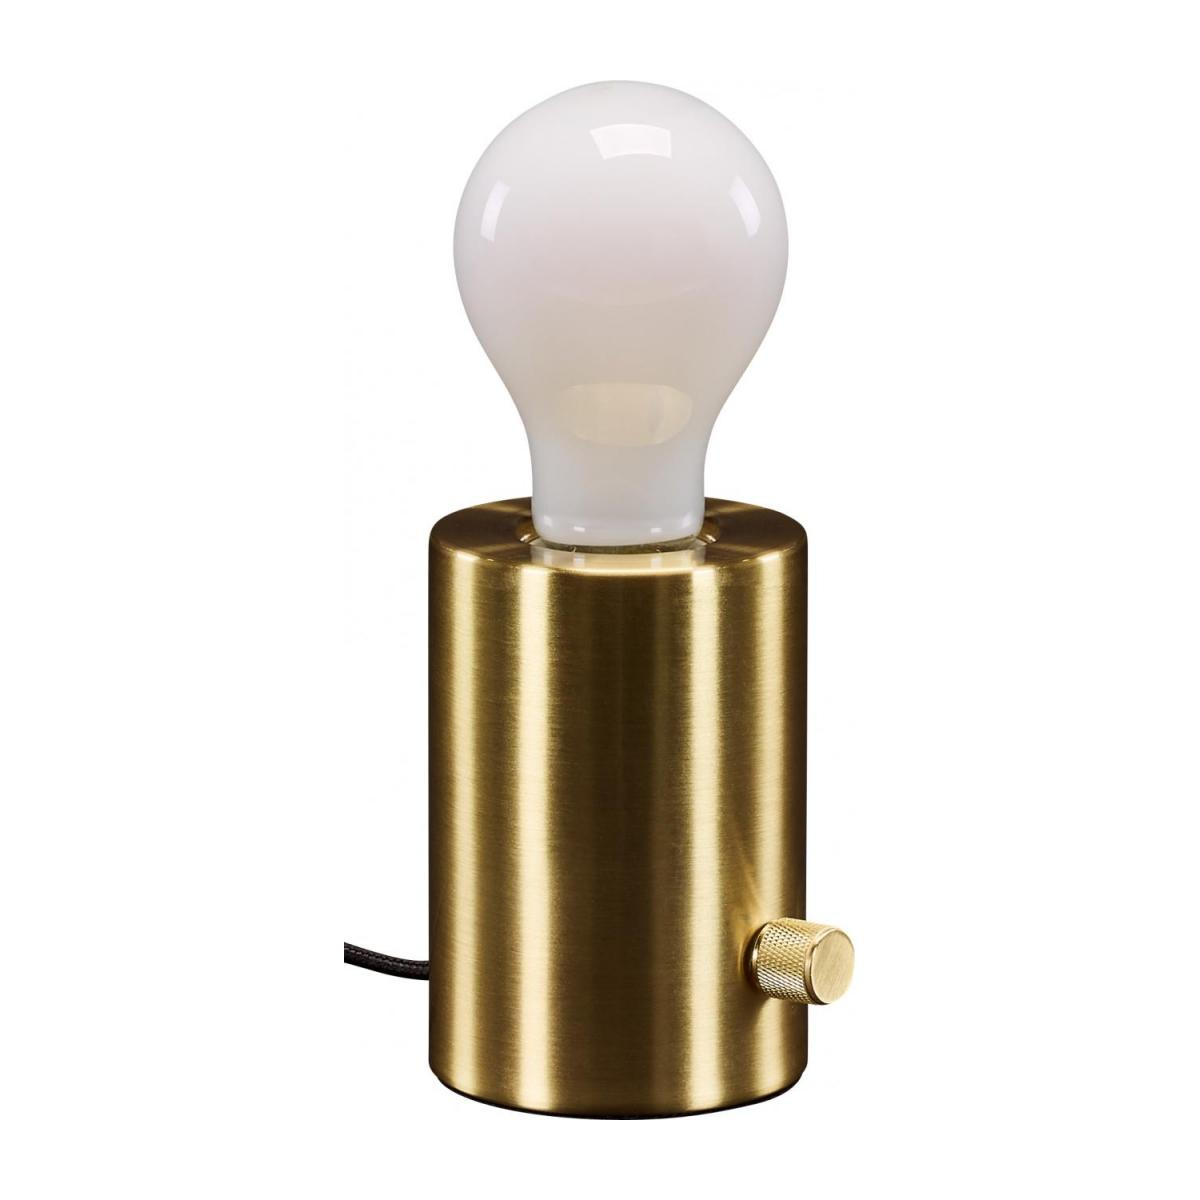 Lampe de table - Laiton n°1